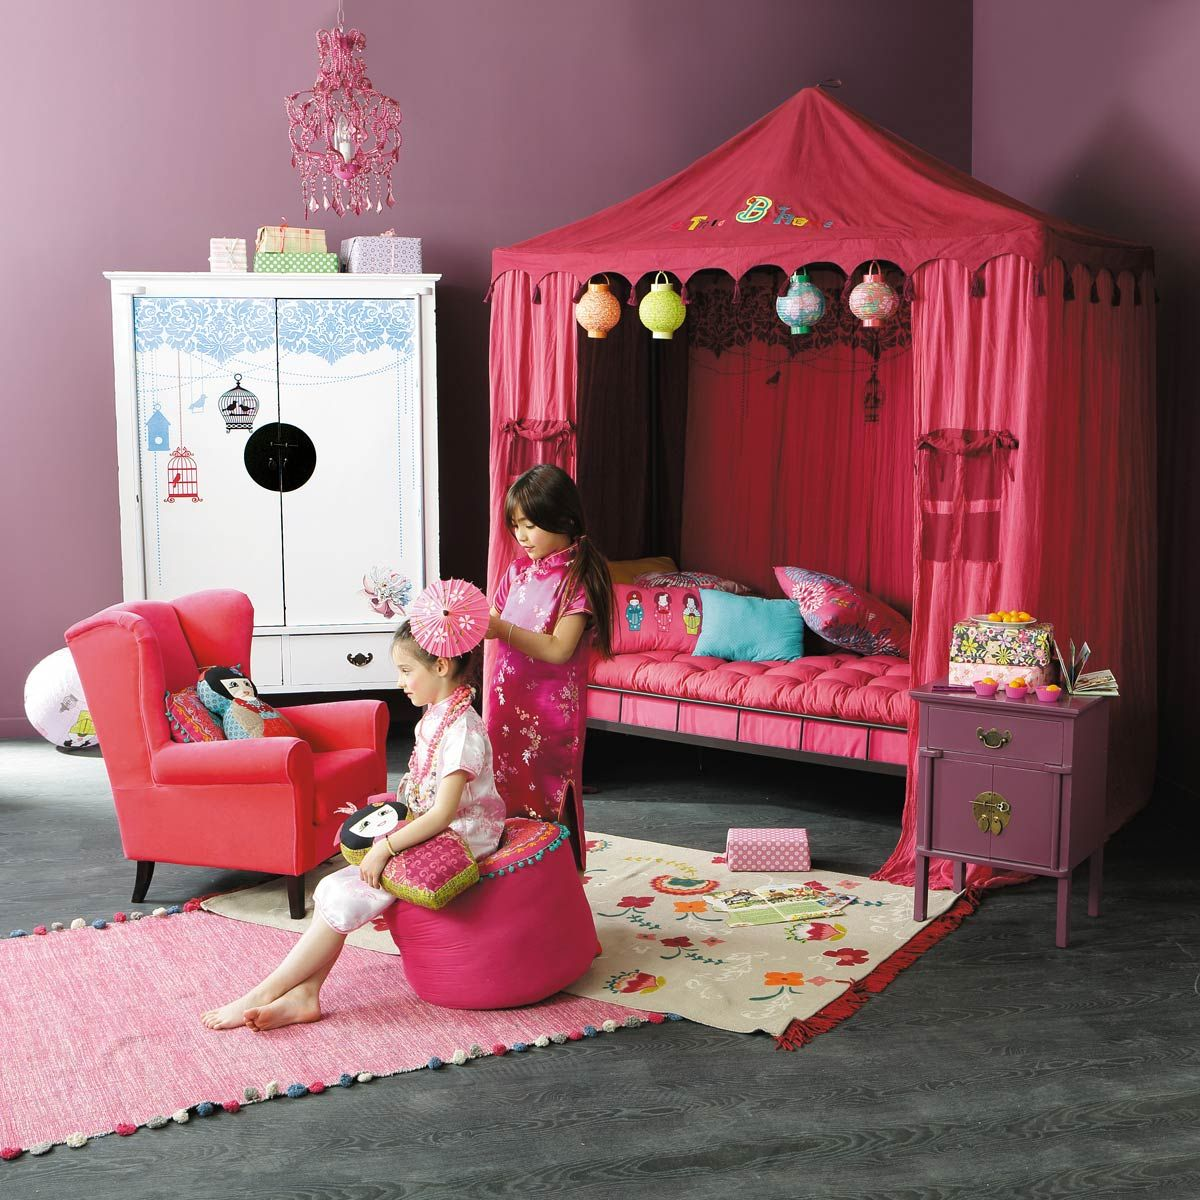 tente enfant jade d couvrir chez maison du monde ce. Black Bedroom Furniture Sets. Home Design Ideas